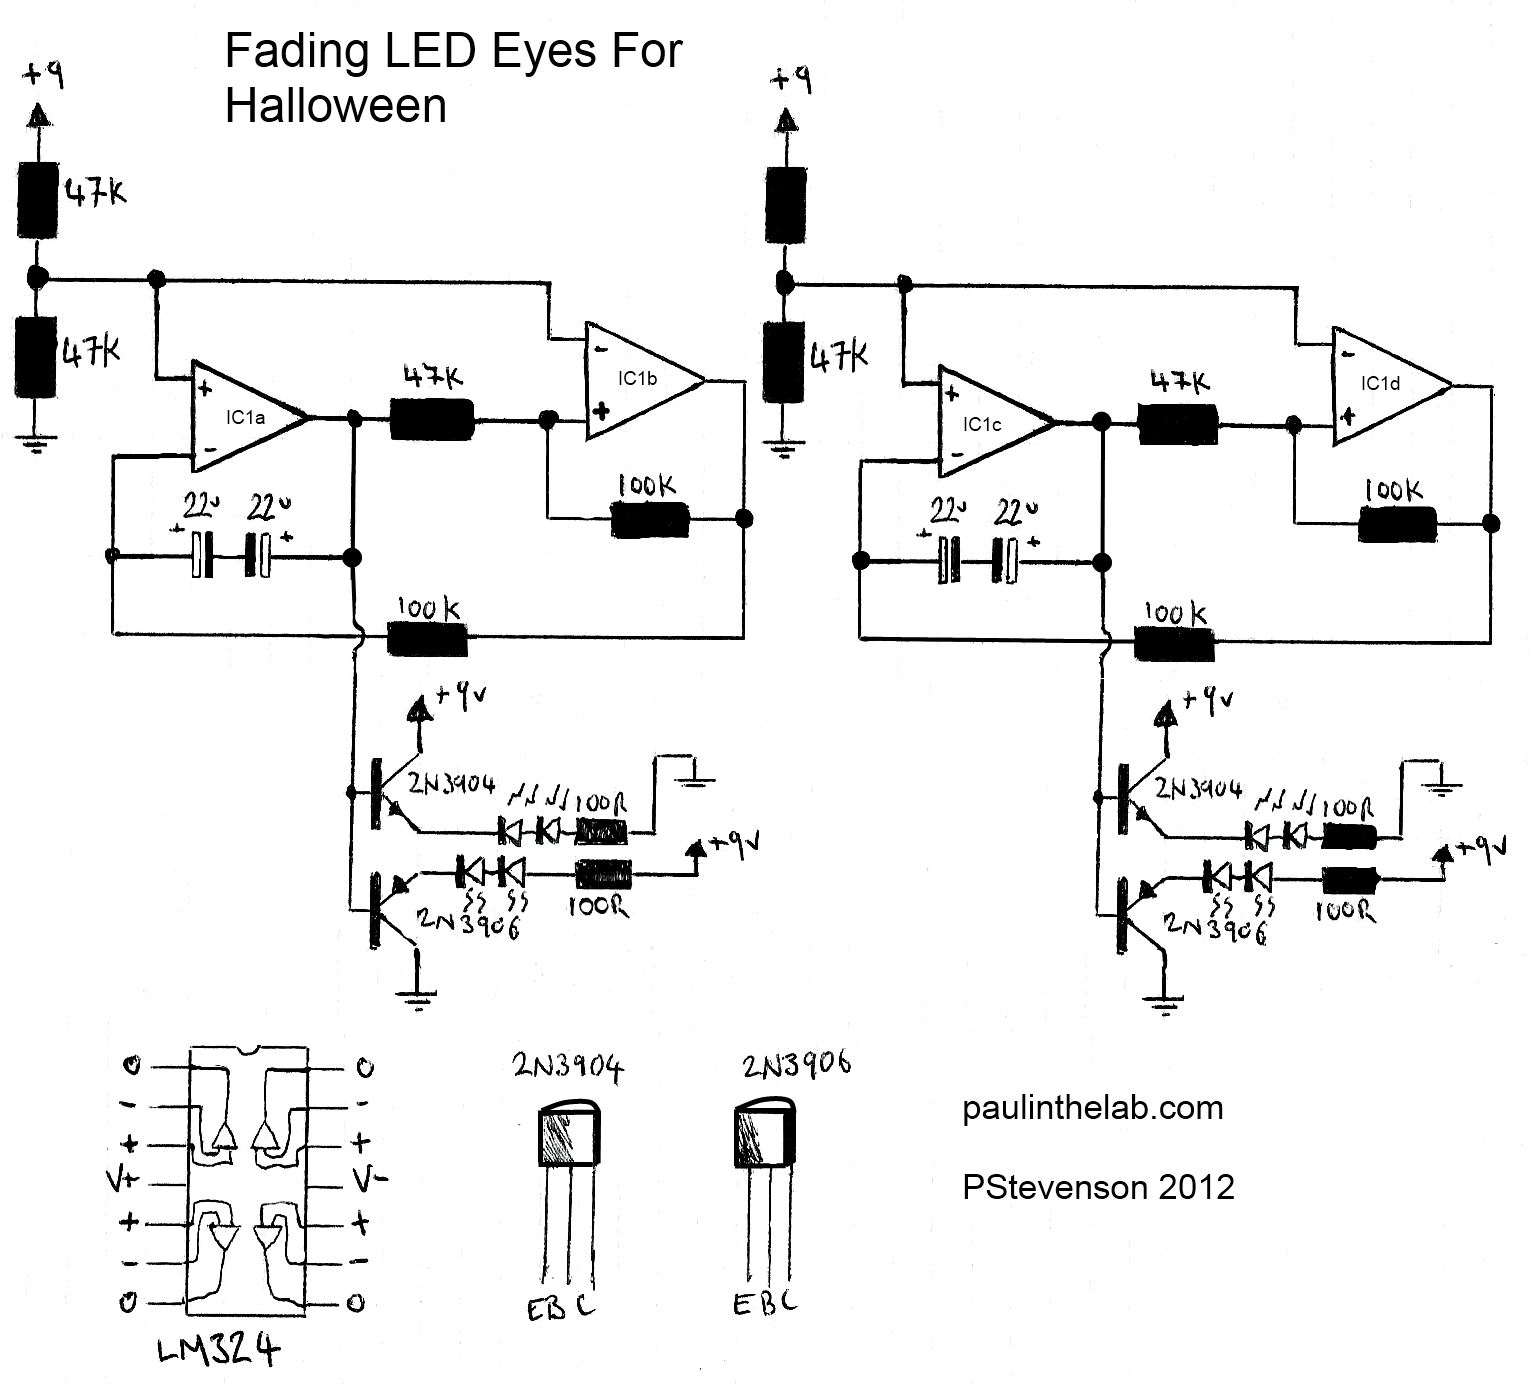 Paul In The Lab Fading Leds Eyes For Halloween Decorations Pnp 24v Wiring Diagrams Photo Make Circuit Will Power 4 Toilet Roll Monsters 2 Per Or Whatever You Want To Put Below Is A Video Of It Action